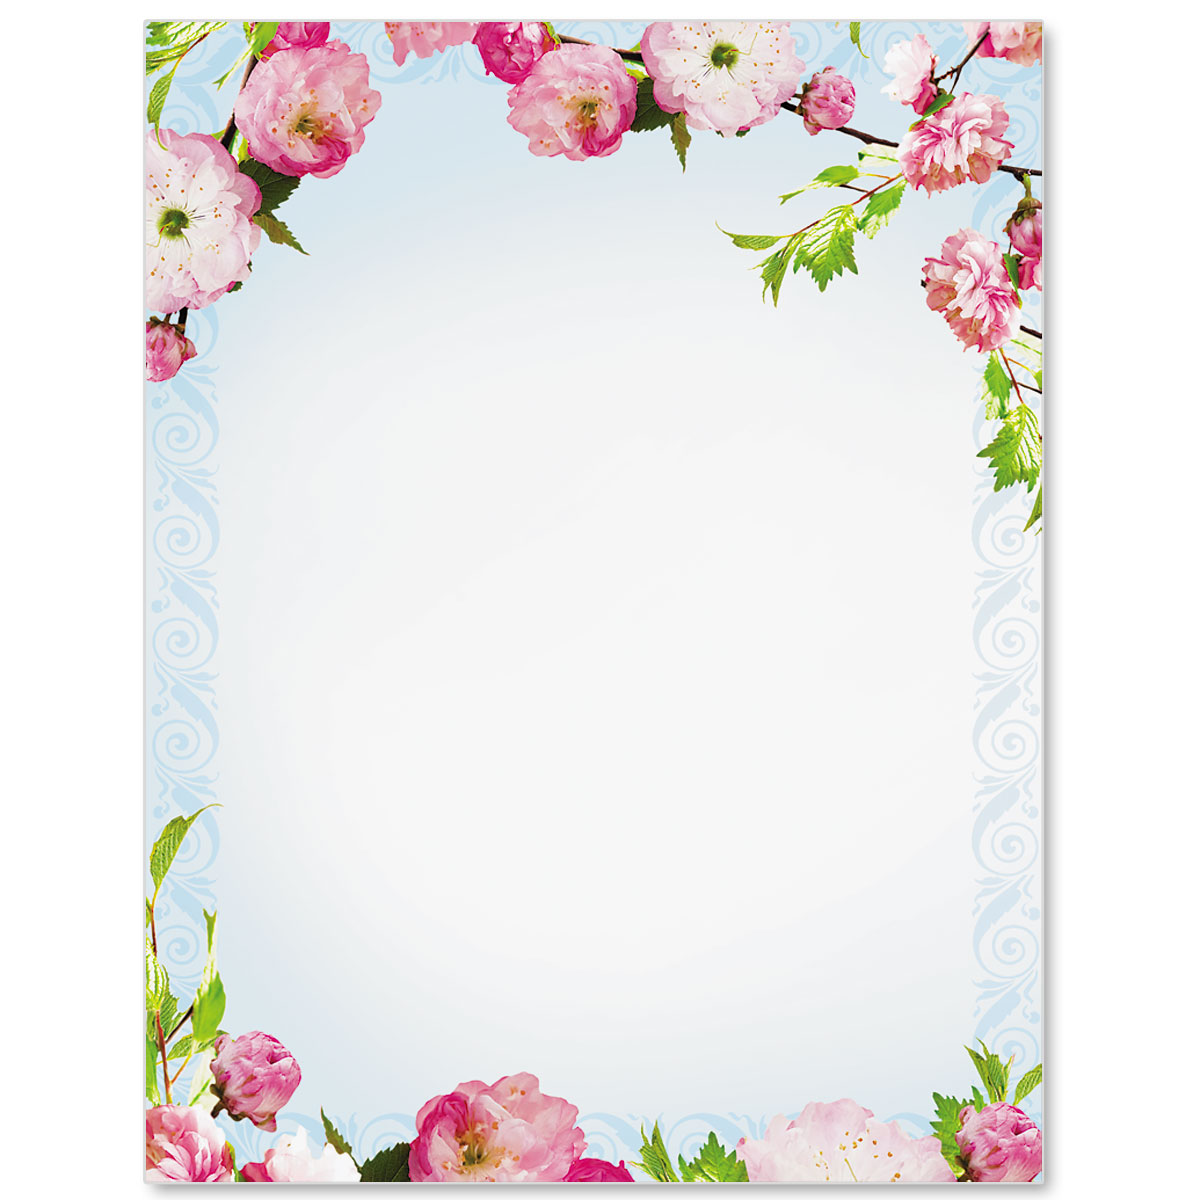 Cherry blossoms border papers paperdirects cherry blossoms border papers mightylinksfo